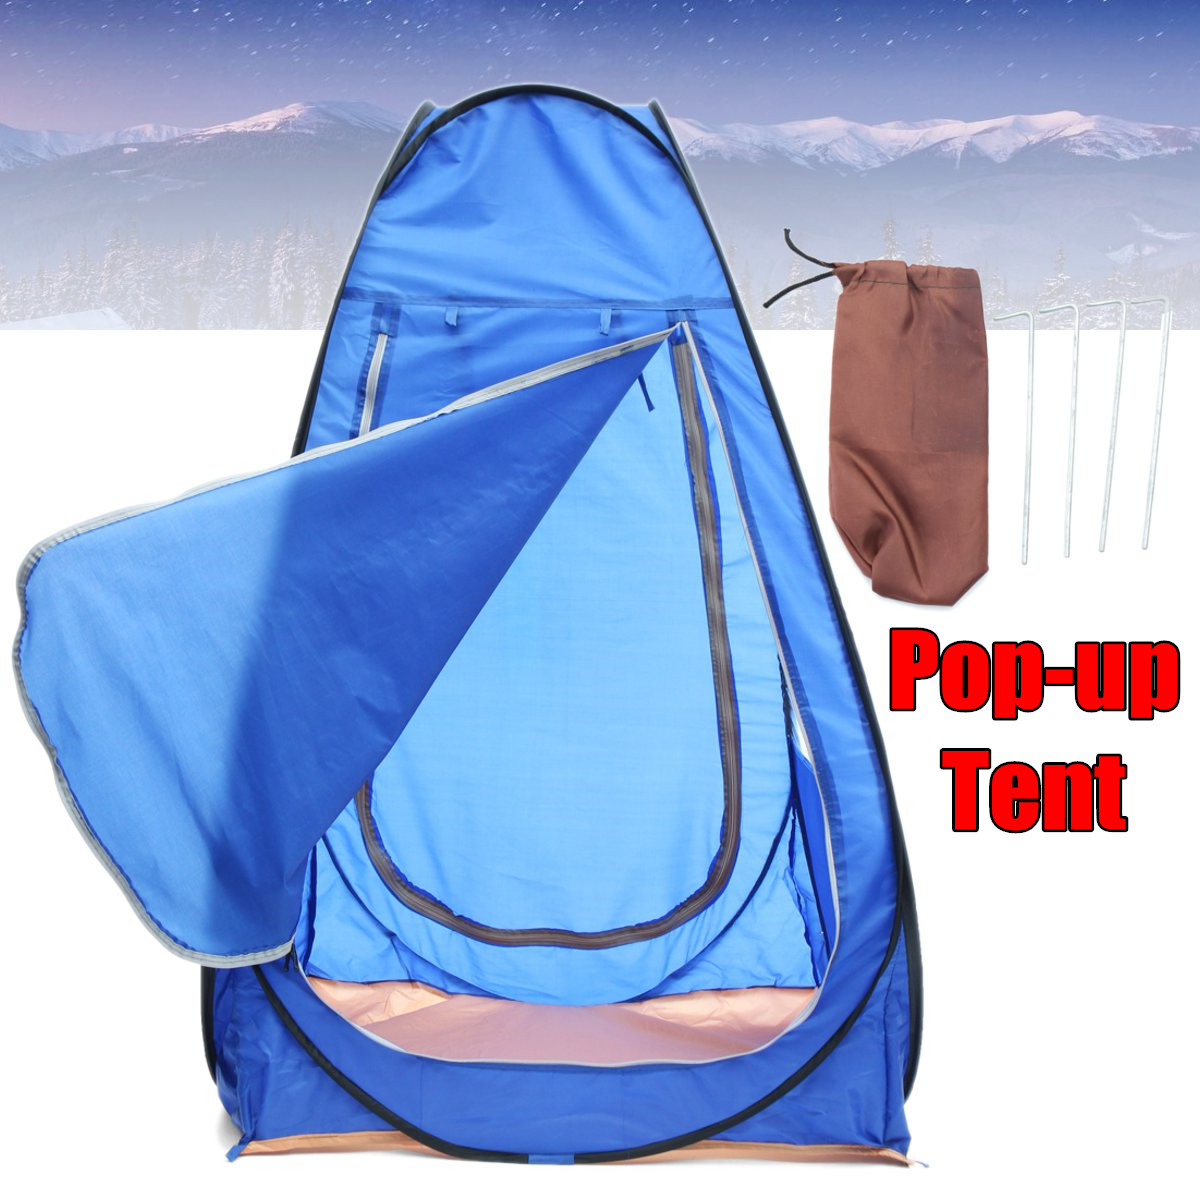 150*100*100 cm Tenda Pop-up Sport Pod Sotto Il Wather Guardare Visualizzazione Portatile di Sport Pop up